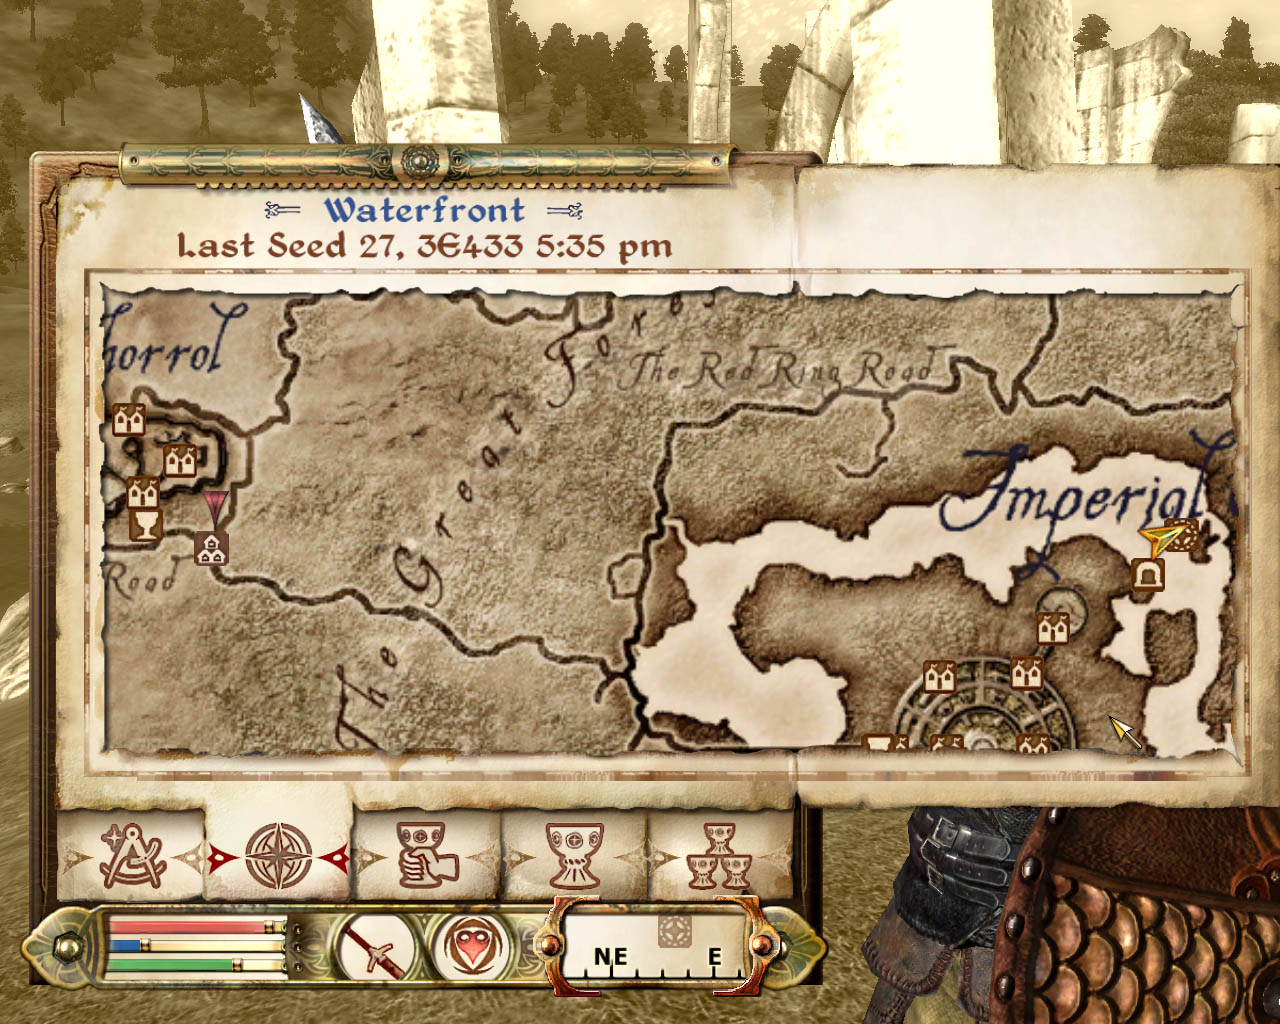 Super adventures in gaming the elder scrolls iv oblivion pc oh yeah the paper map for oblivion is a huge disappointment after the incredibly detailed one i got with morrowind it has nothing on it gumiabroncs Choice Image